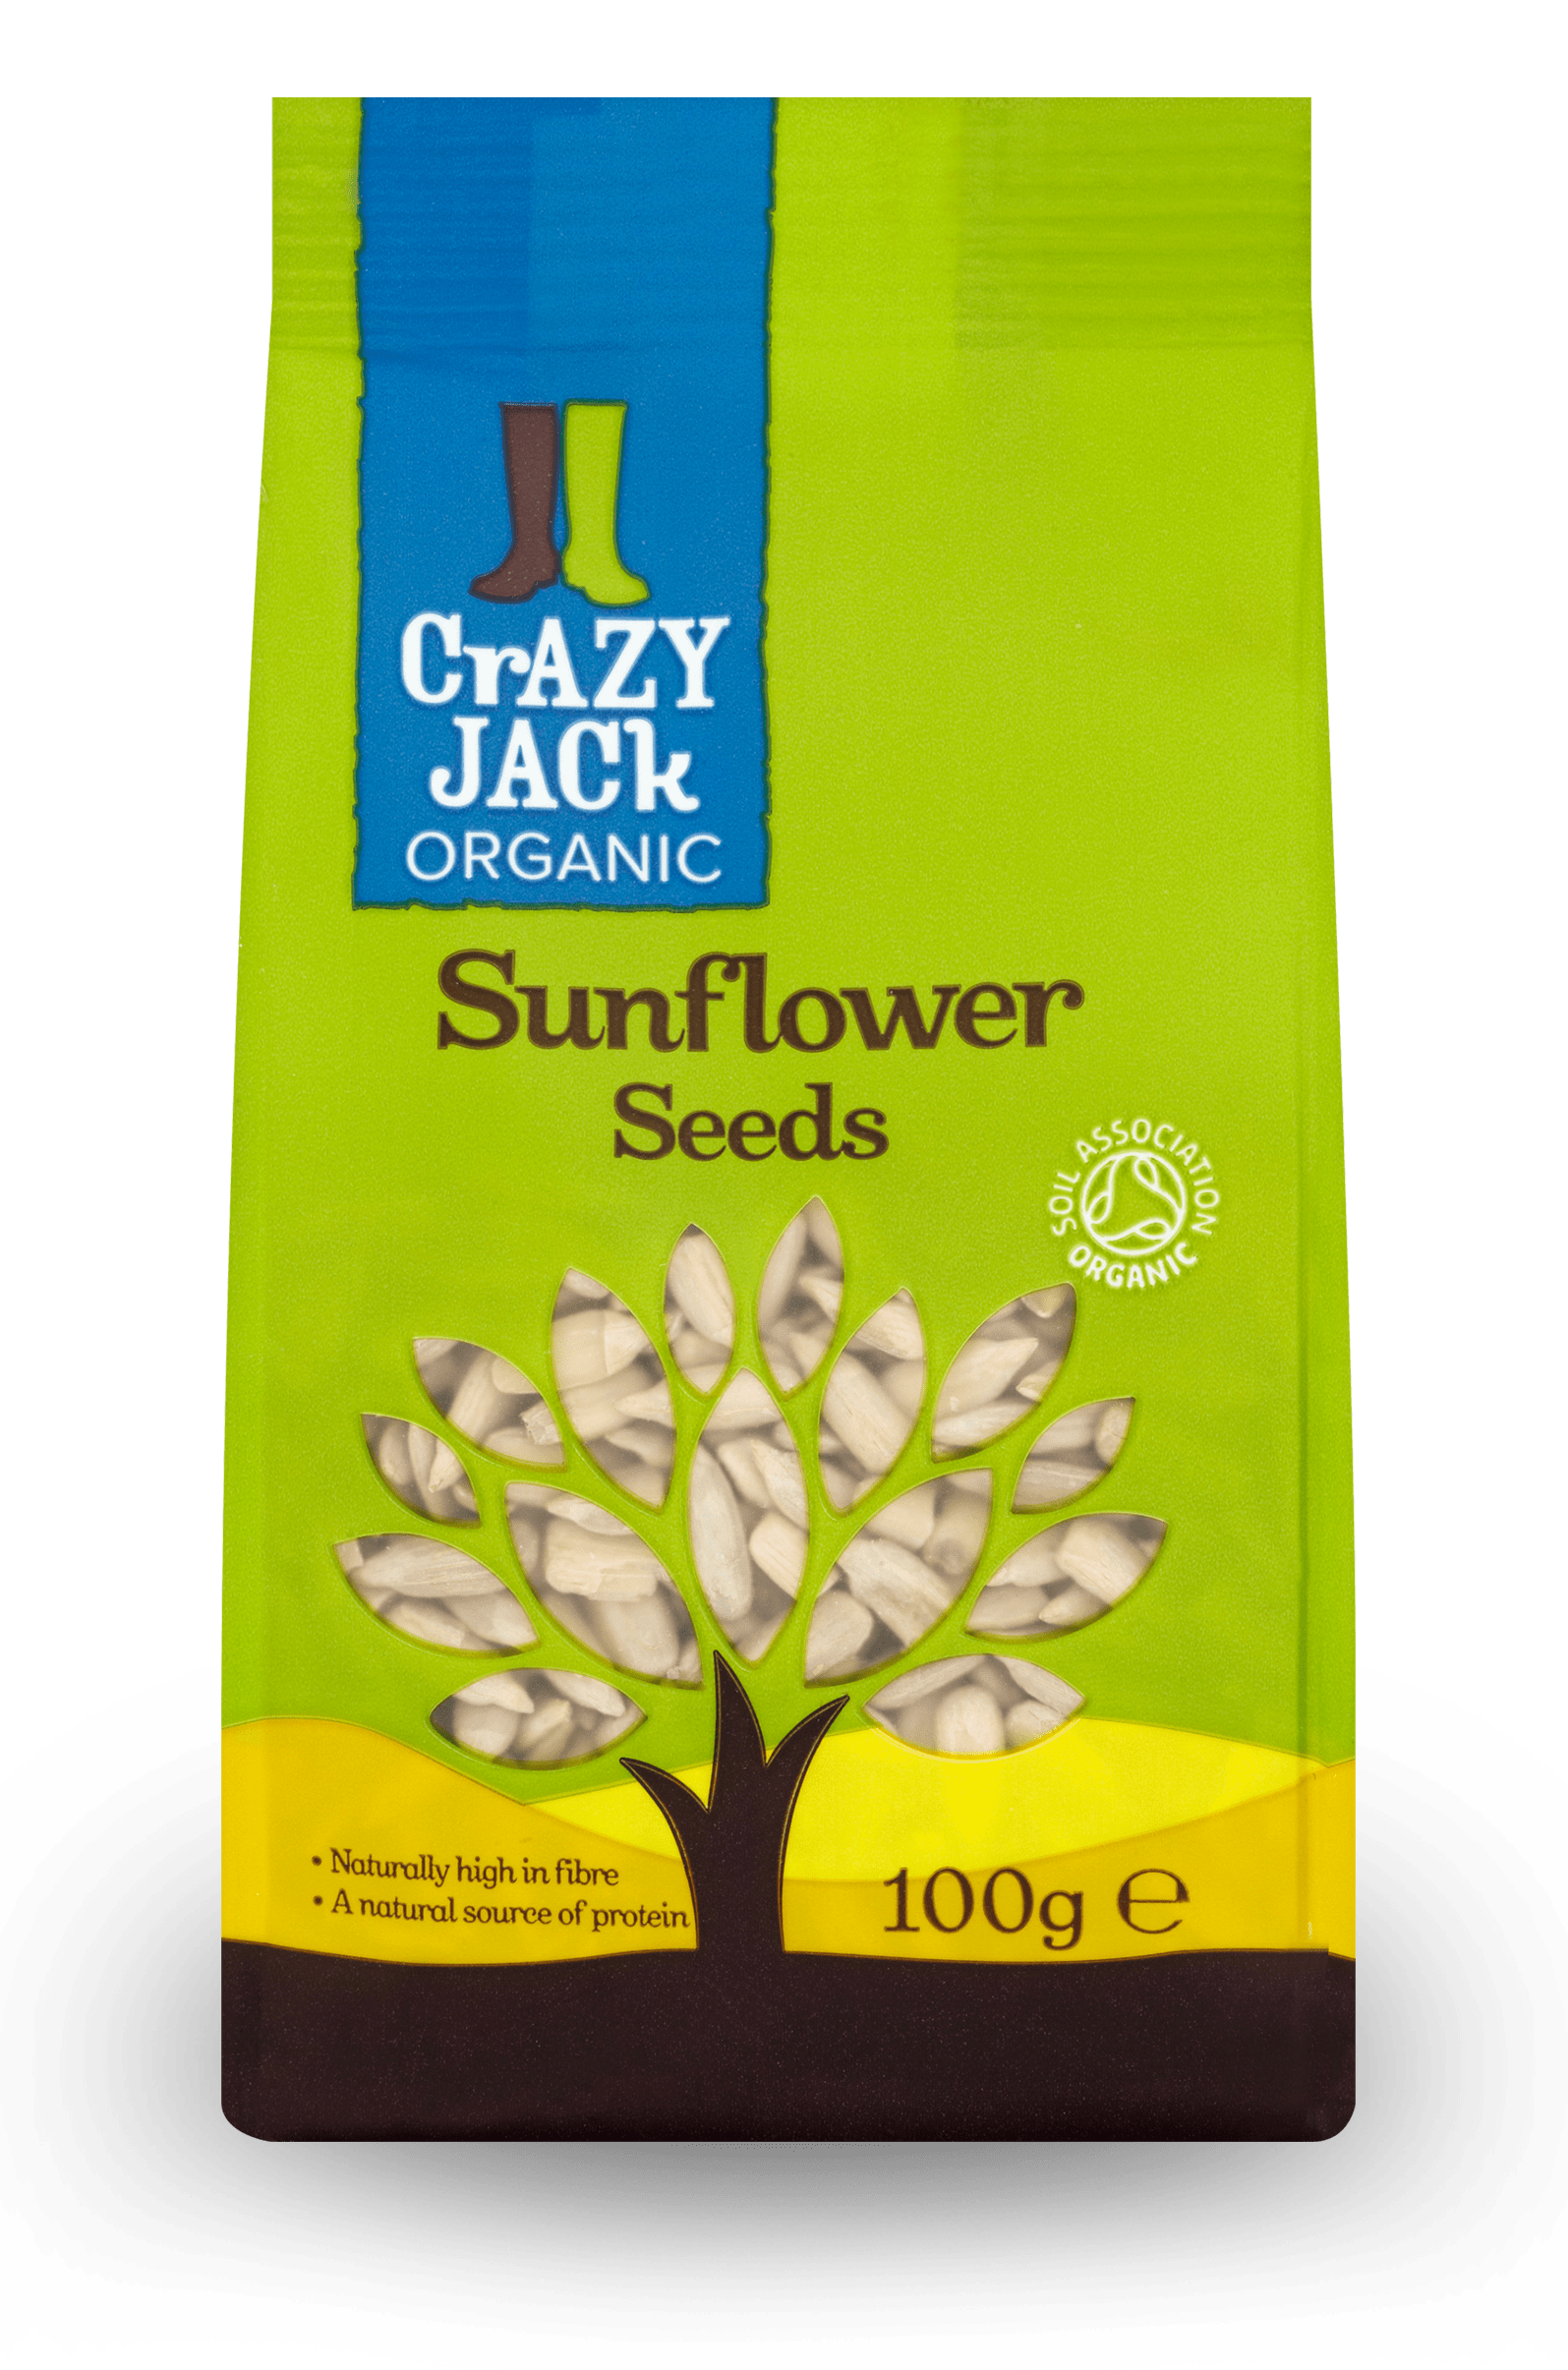 100g packet of organic sunflower seeds